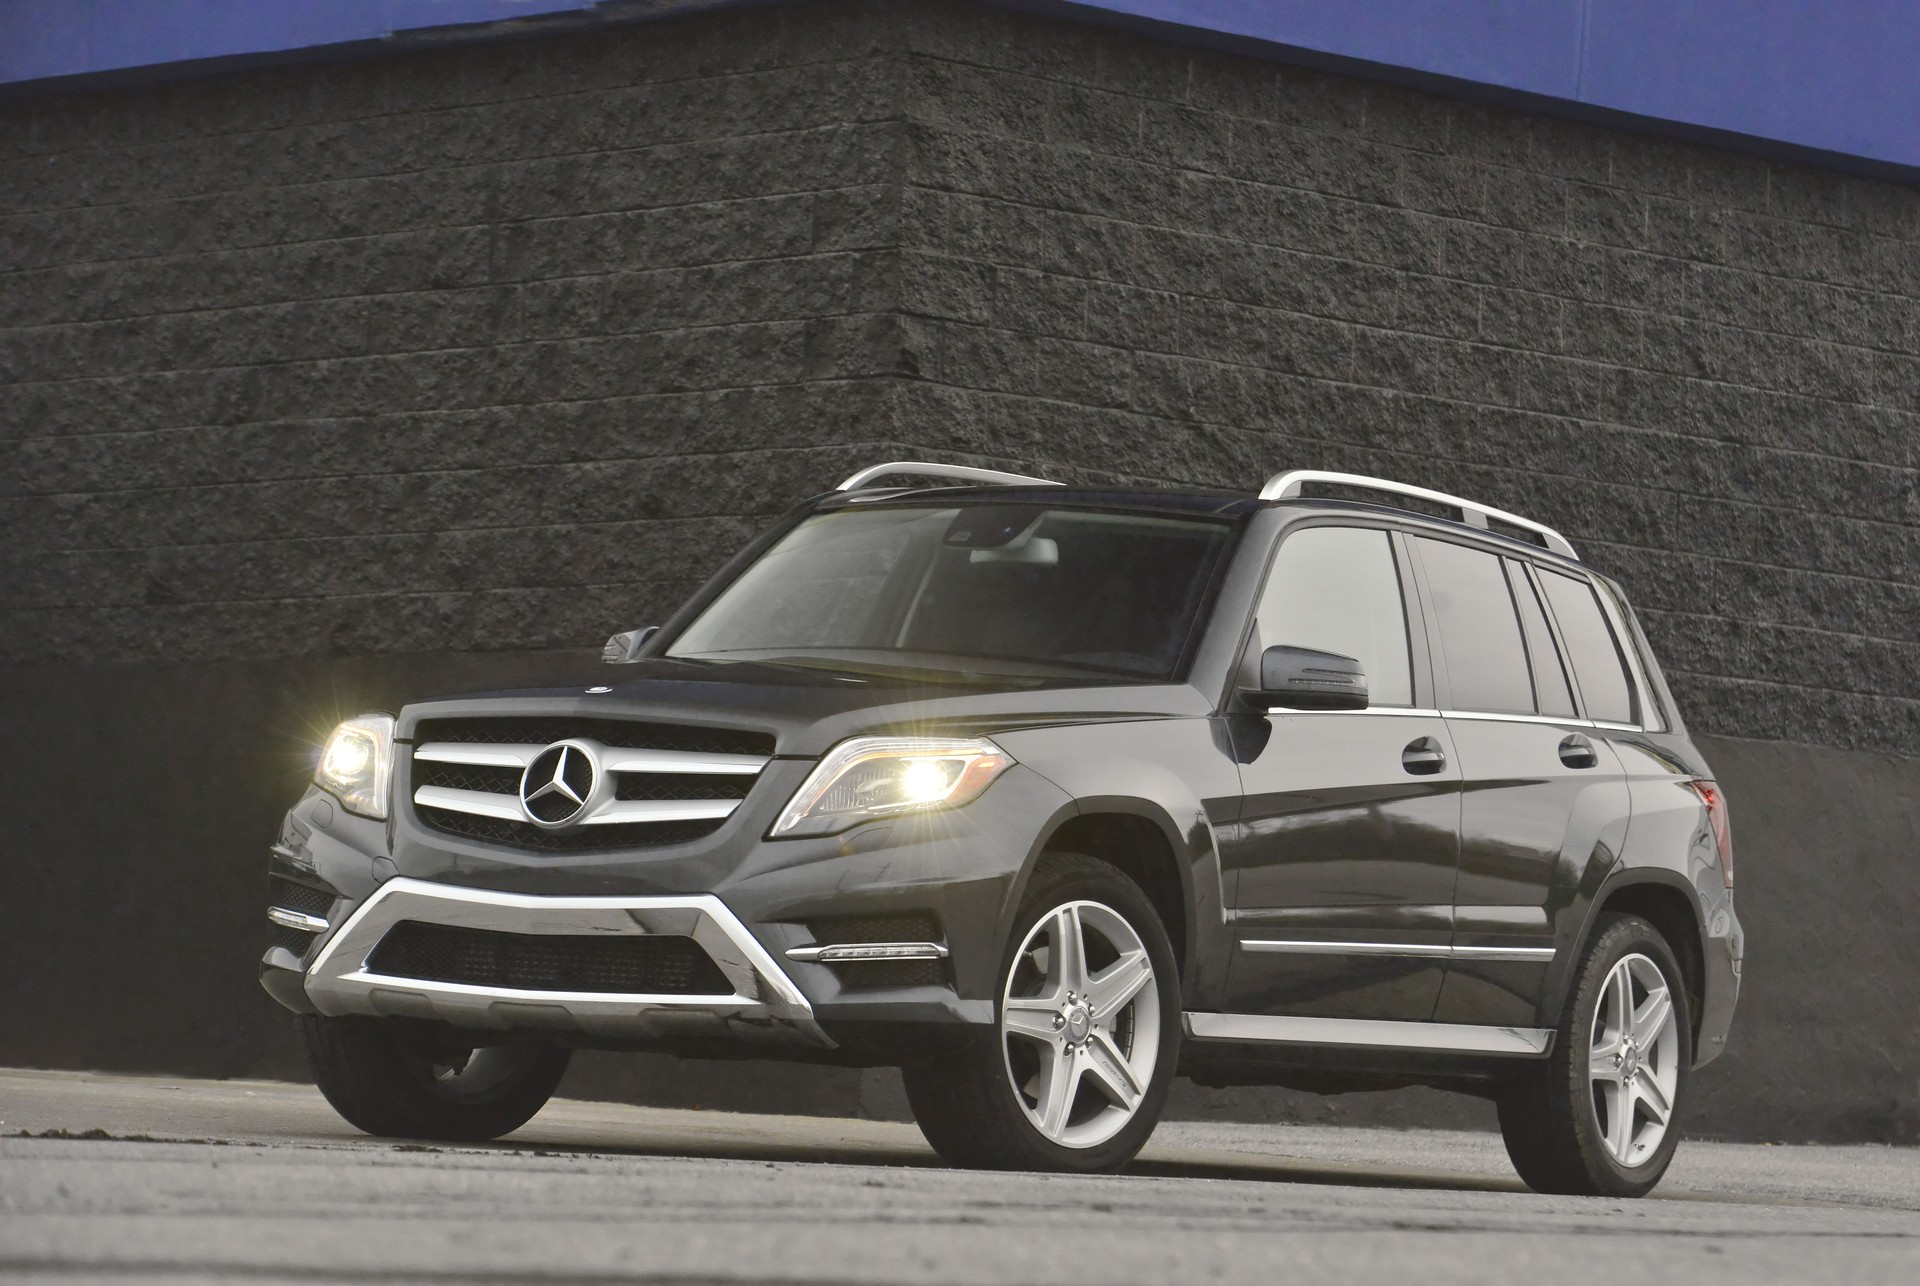 2014 mercedes benz glk class 100476639 for Types of mercedes benz cars